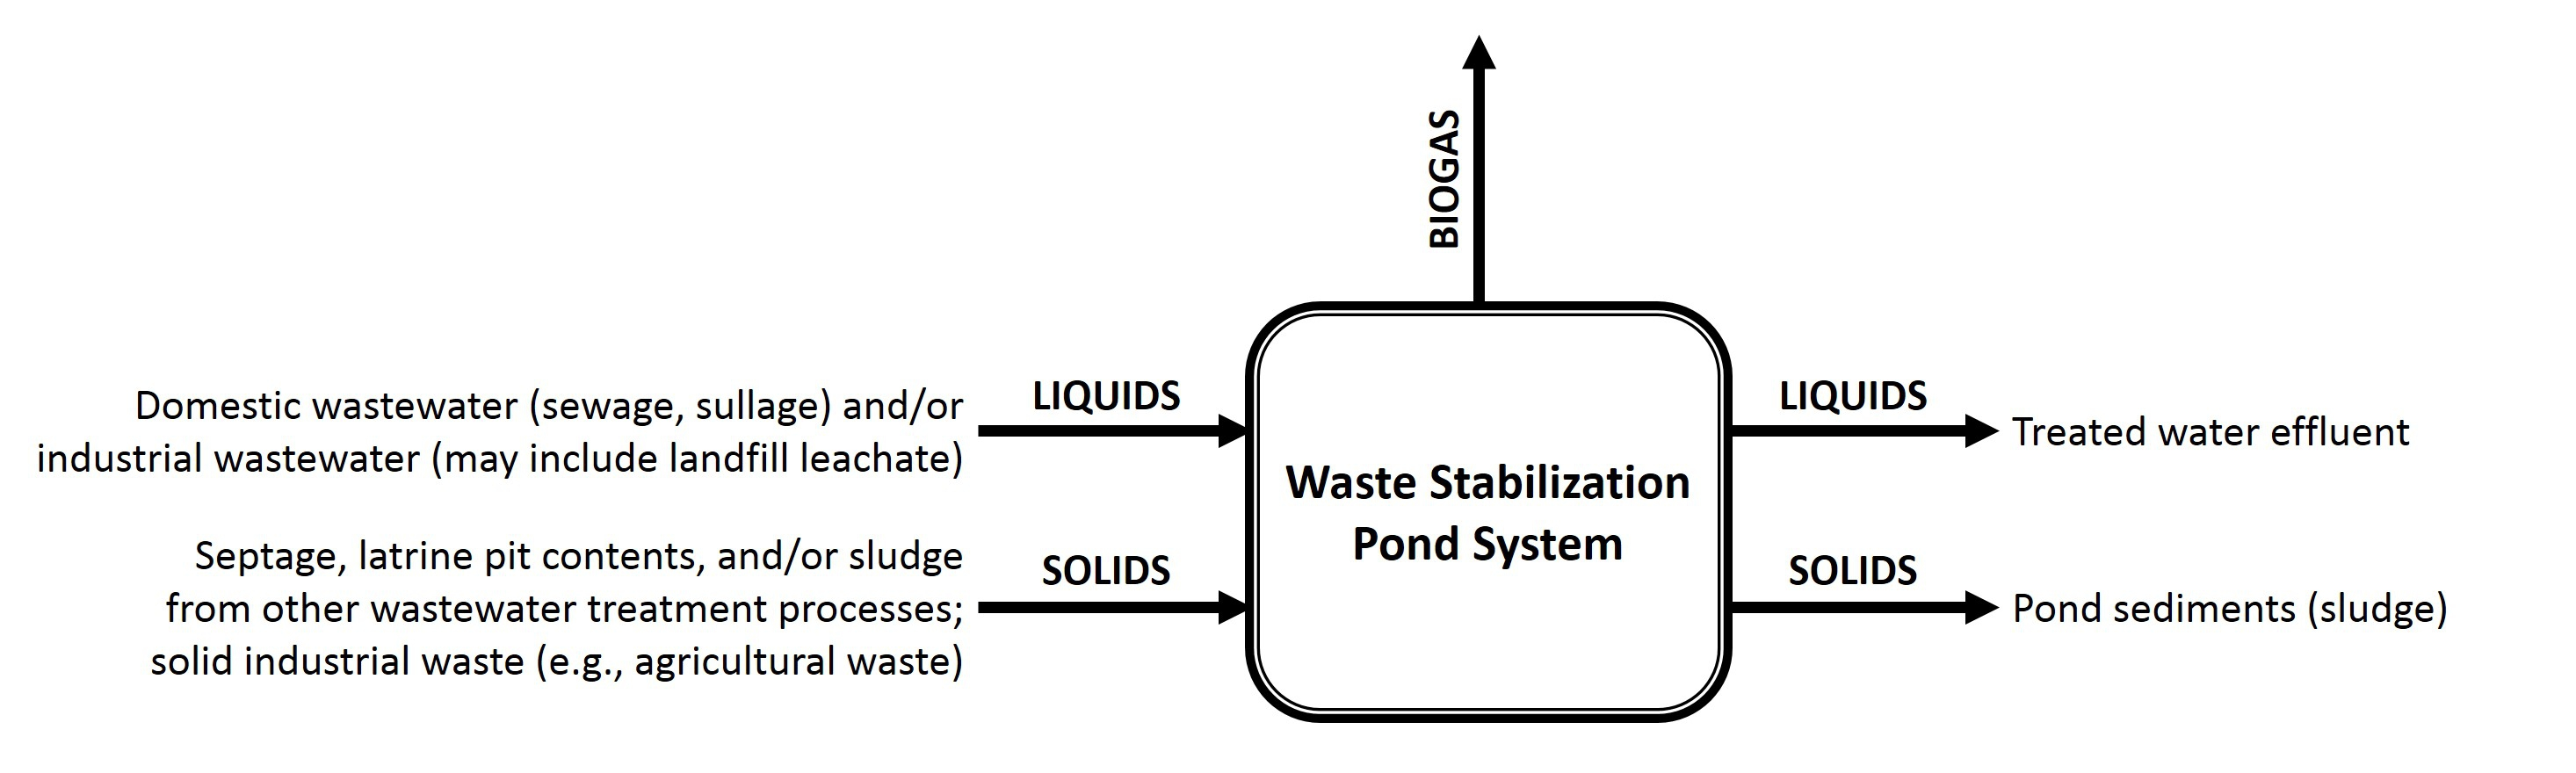 Industrial wastewater treatment pdf diagram basketball for Design of waste stabilization pond systems a review